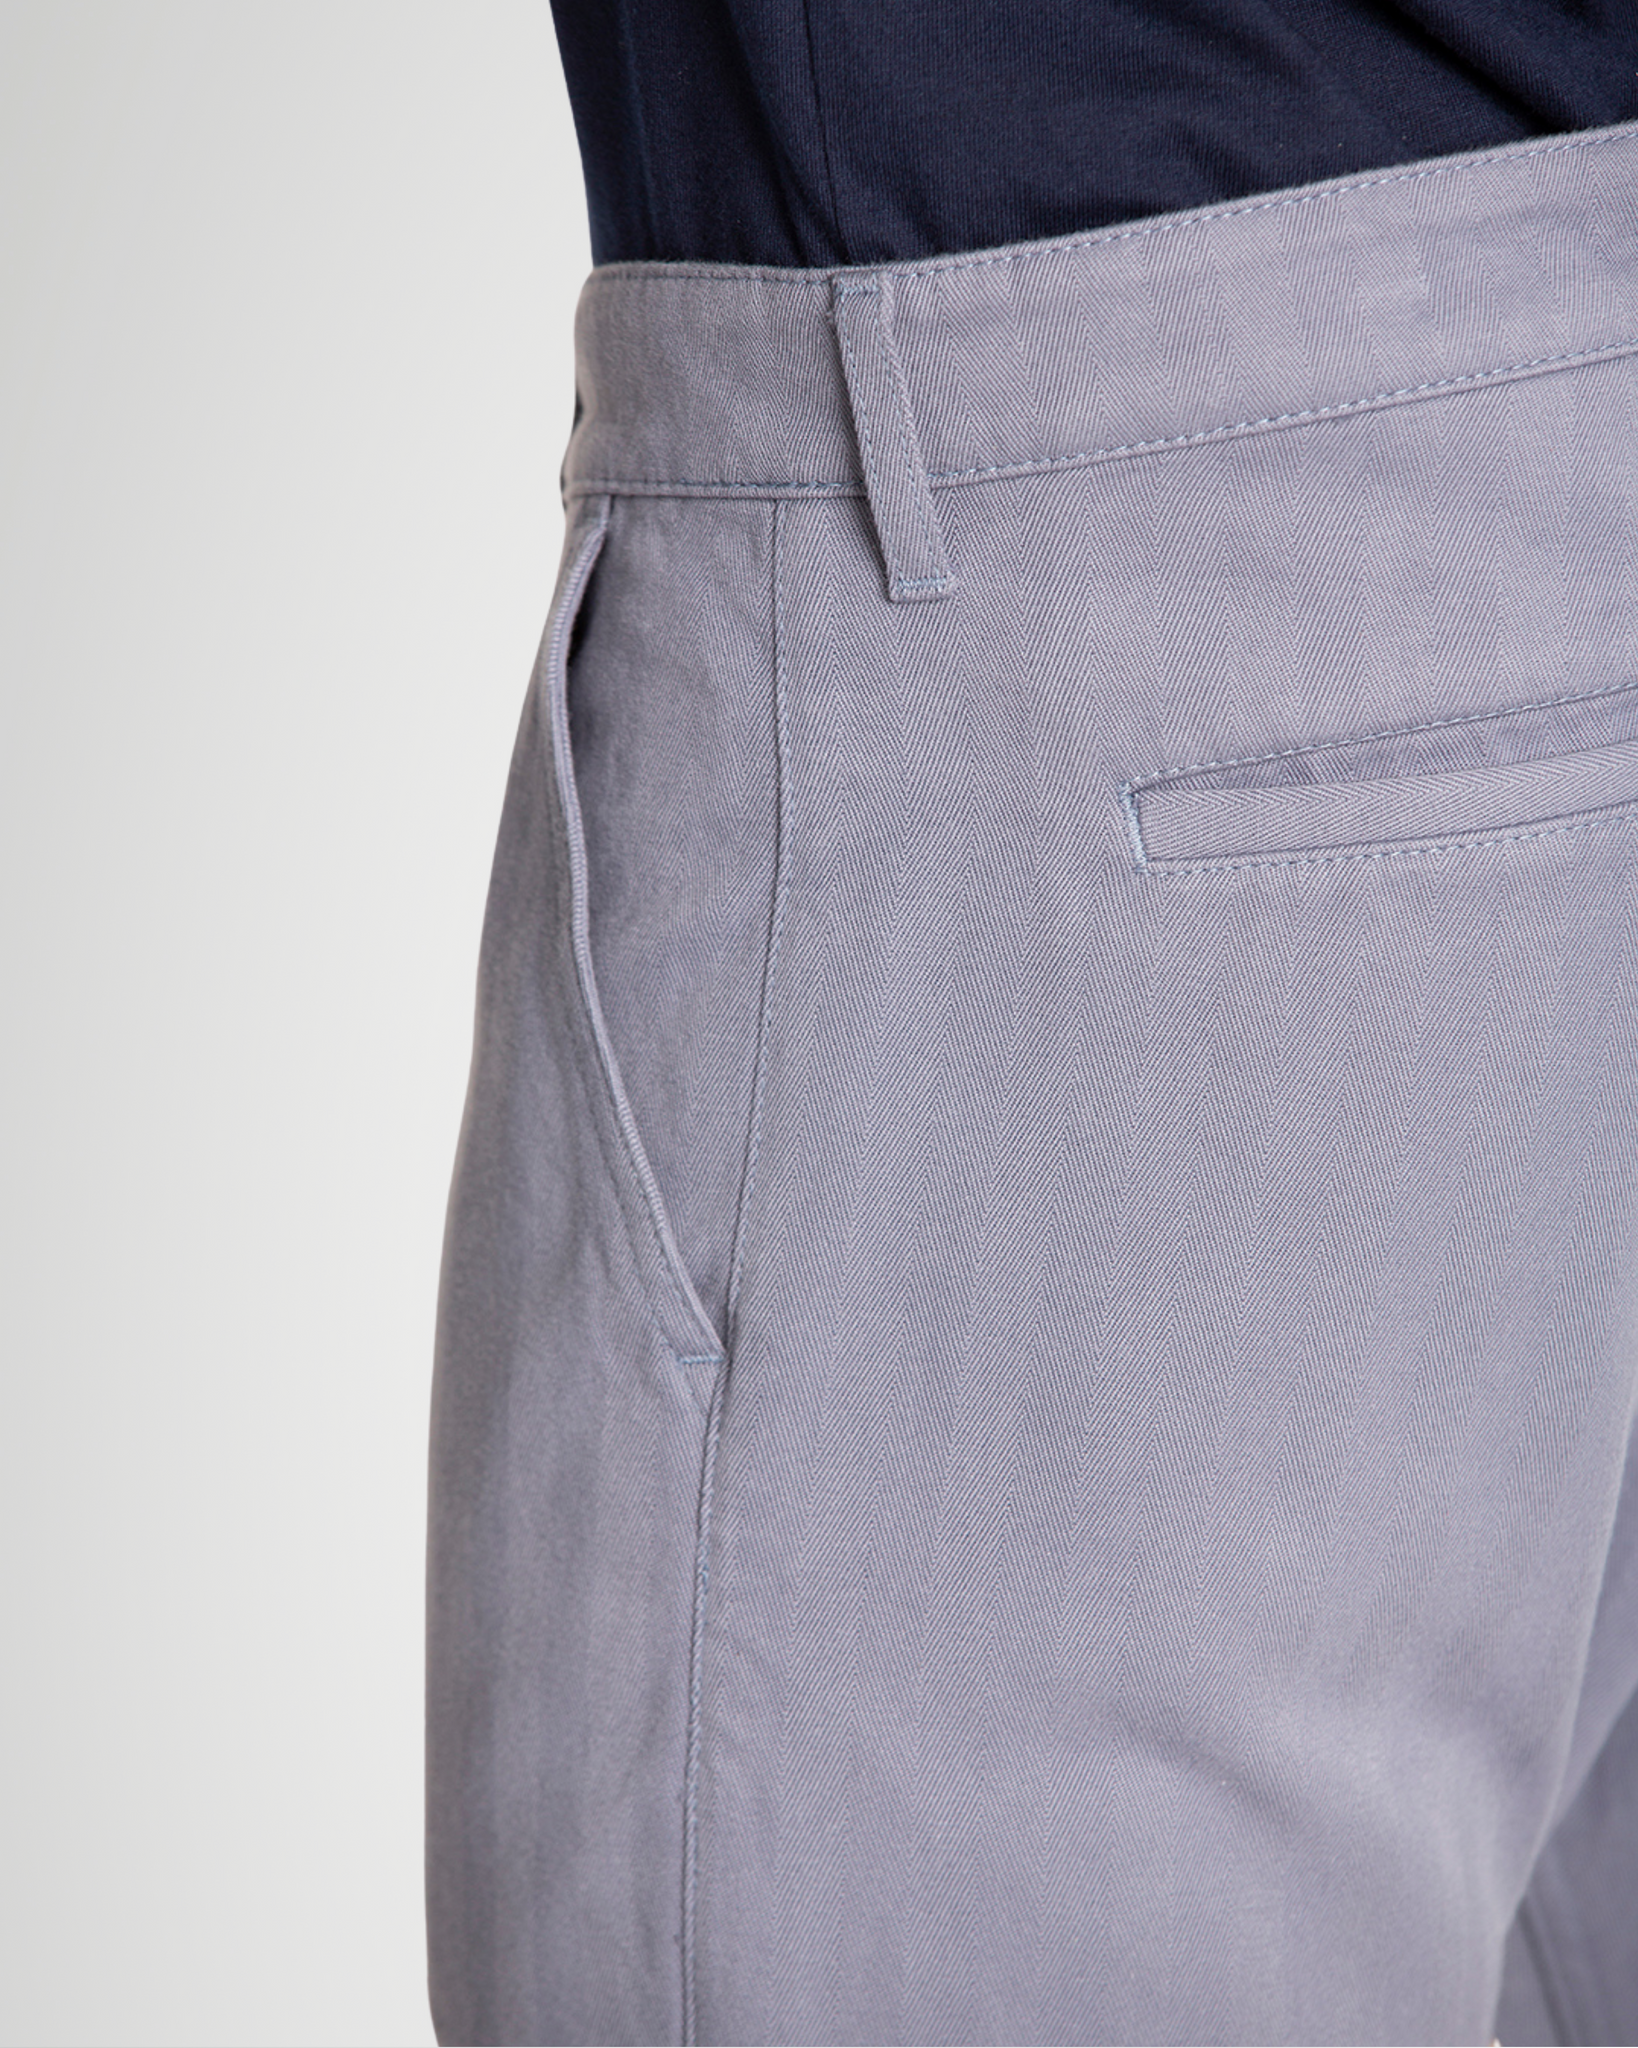 The Cotton Herringbone Straight Leg Trouser in Folkstone Grey